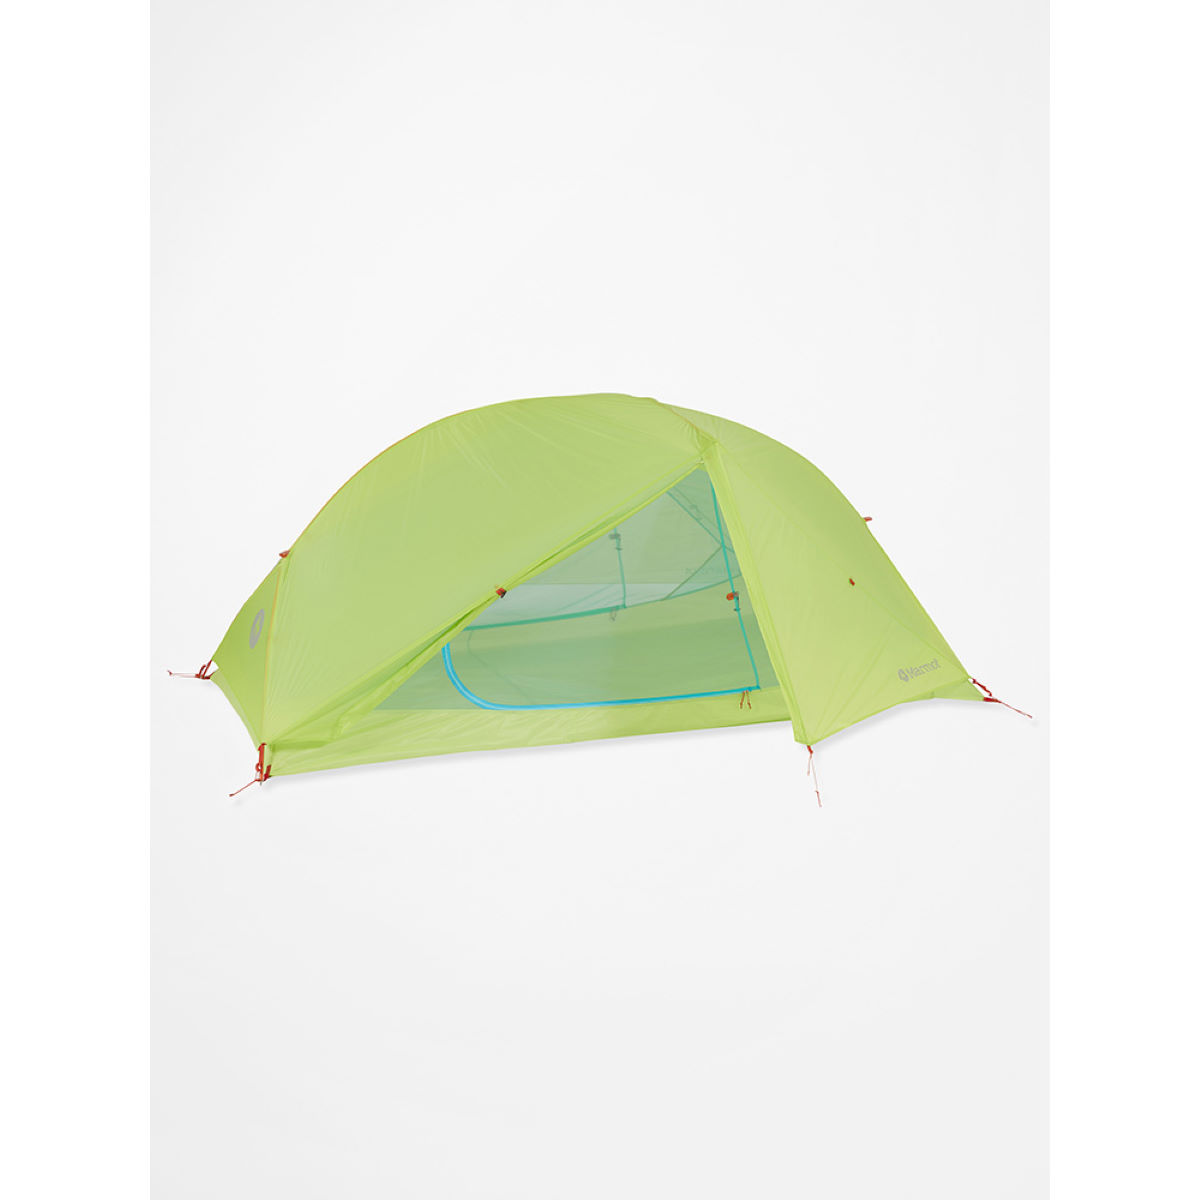 Marmot Marmot Superalloy 2 Person Tent   Tents